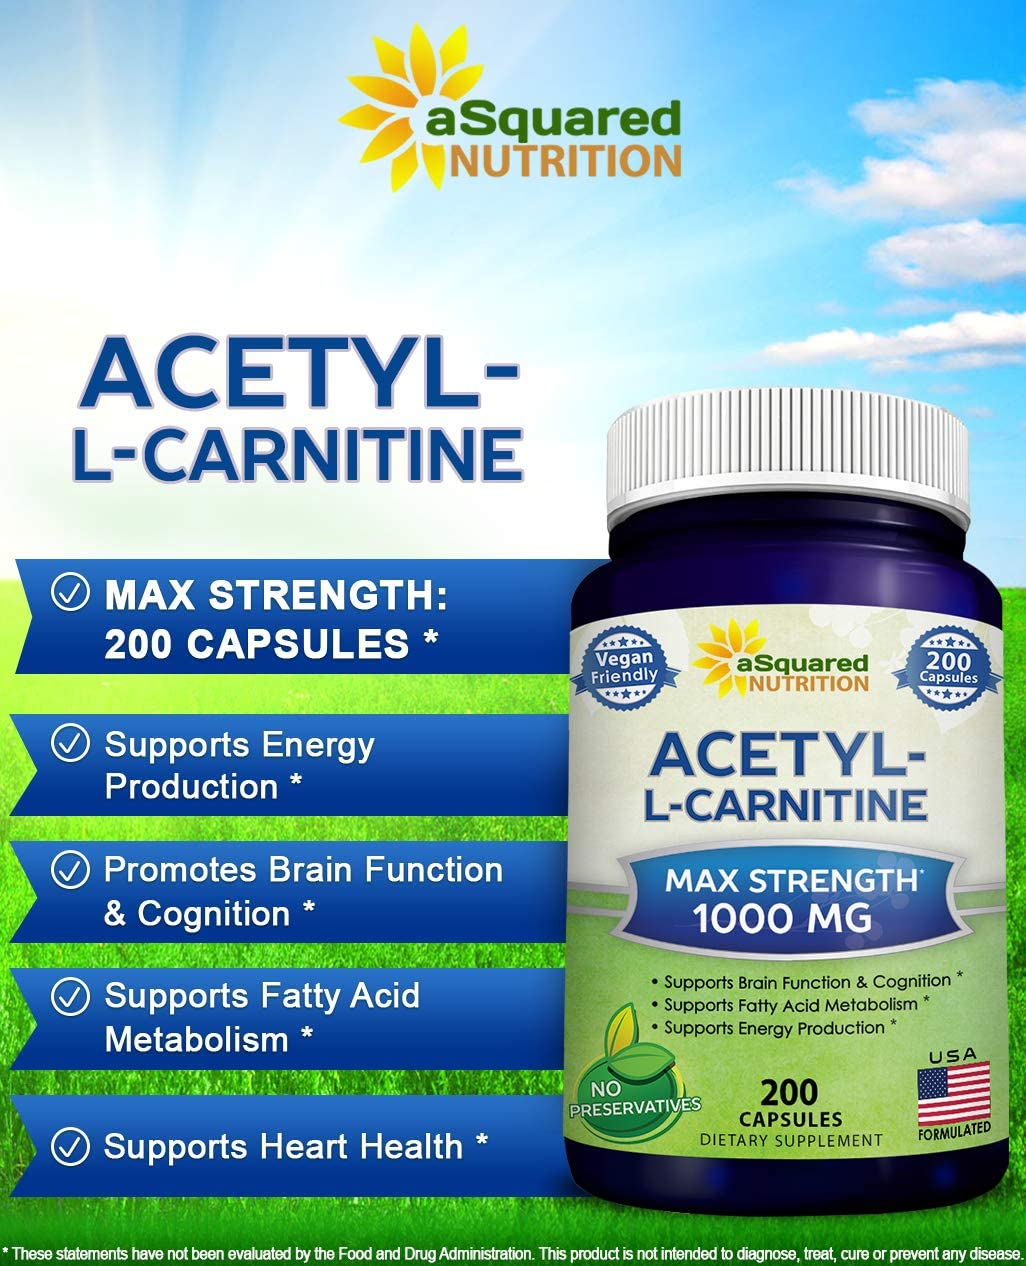 Pure Acetyl L-Carnitine 1000mg Max Strength – 200 Veggie Capsules – High Potency Acetyl L Carnitine HCL ALCAR Supplement Pills to Support Energy, Brain Function Fatty Acid Metabolism